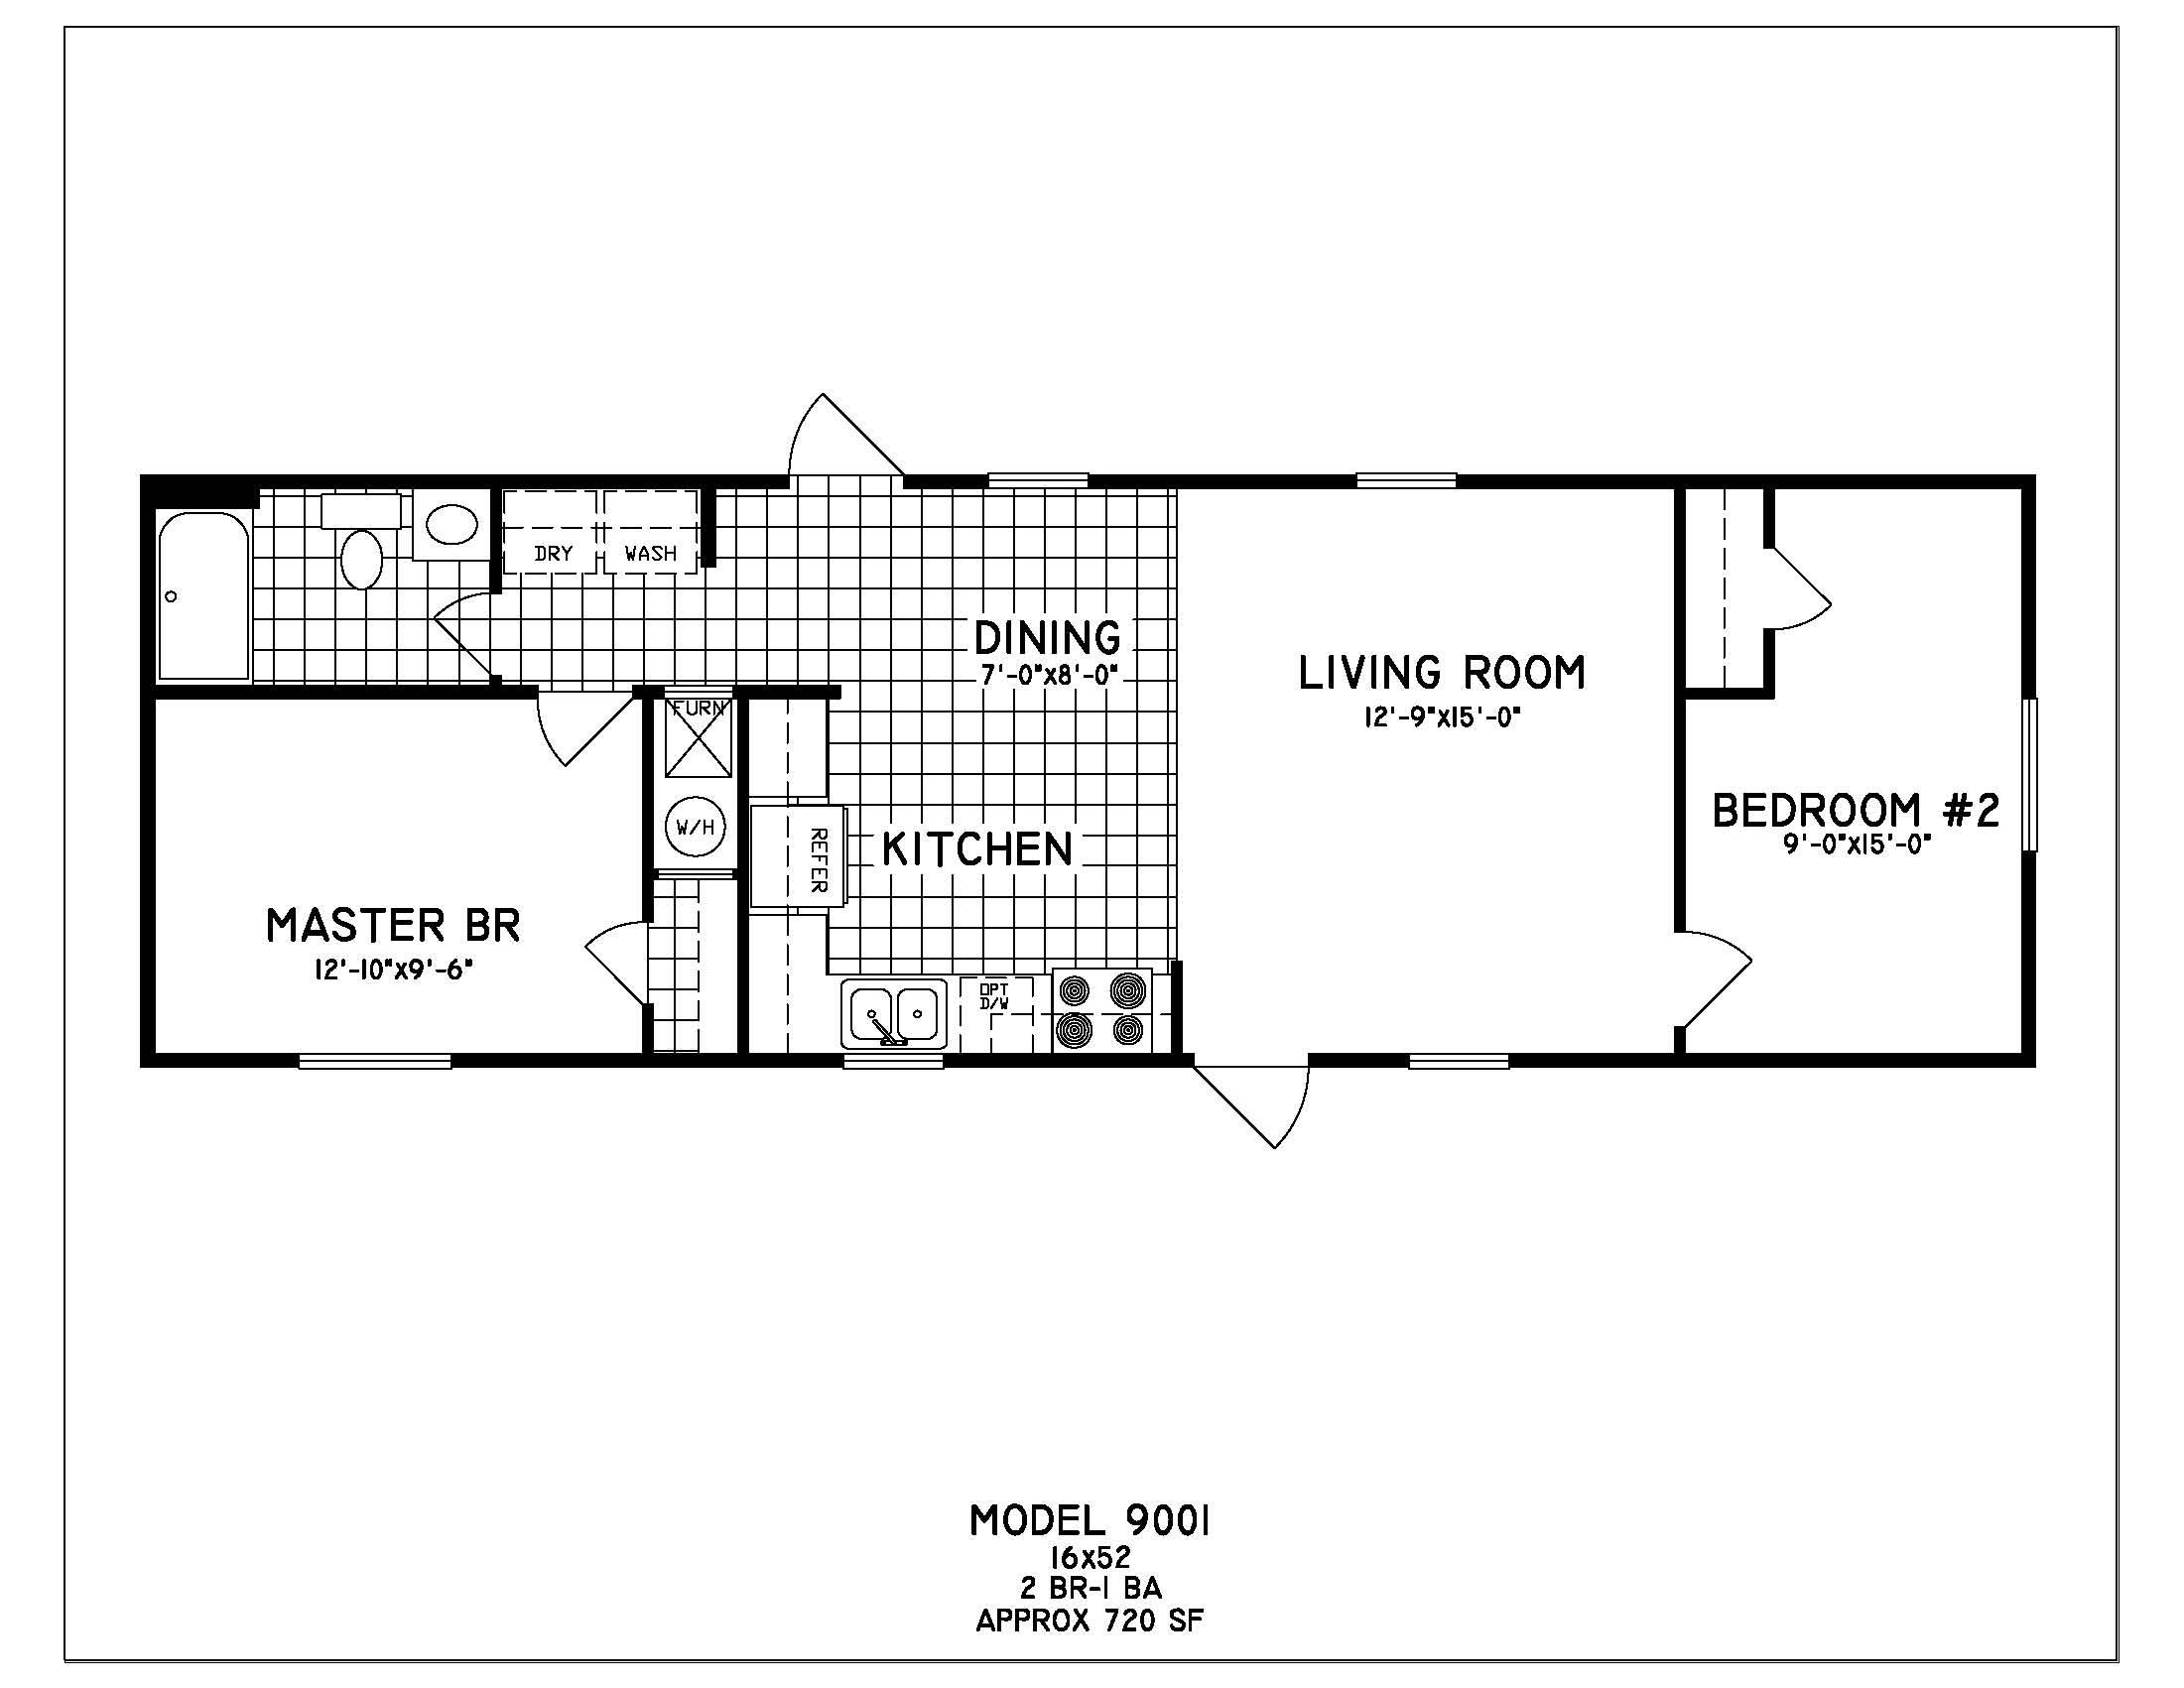 Maxey 39 s homes inc in oklahoma city ok manufactured home for Floor plans oklahoma